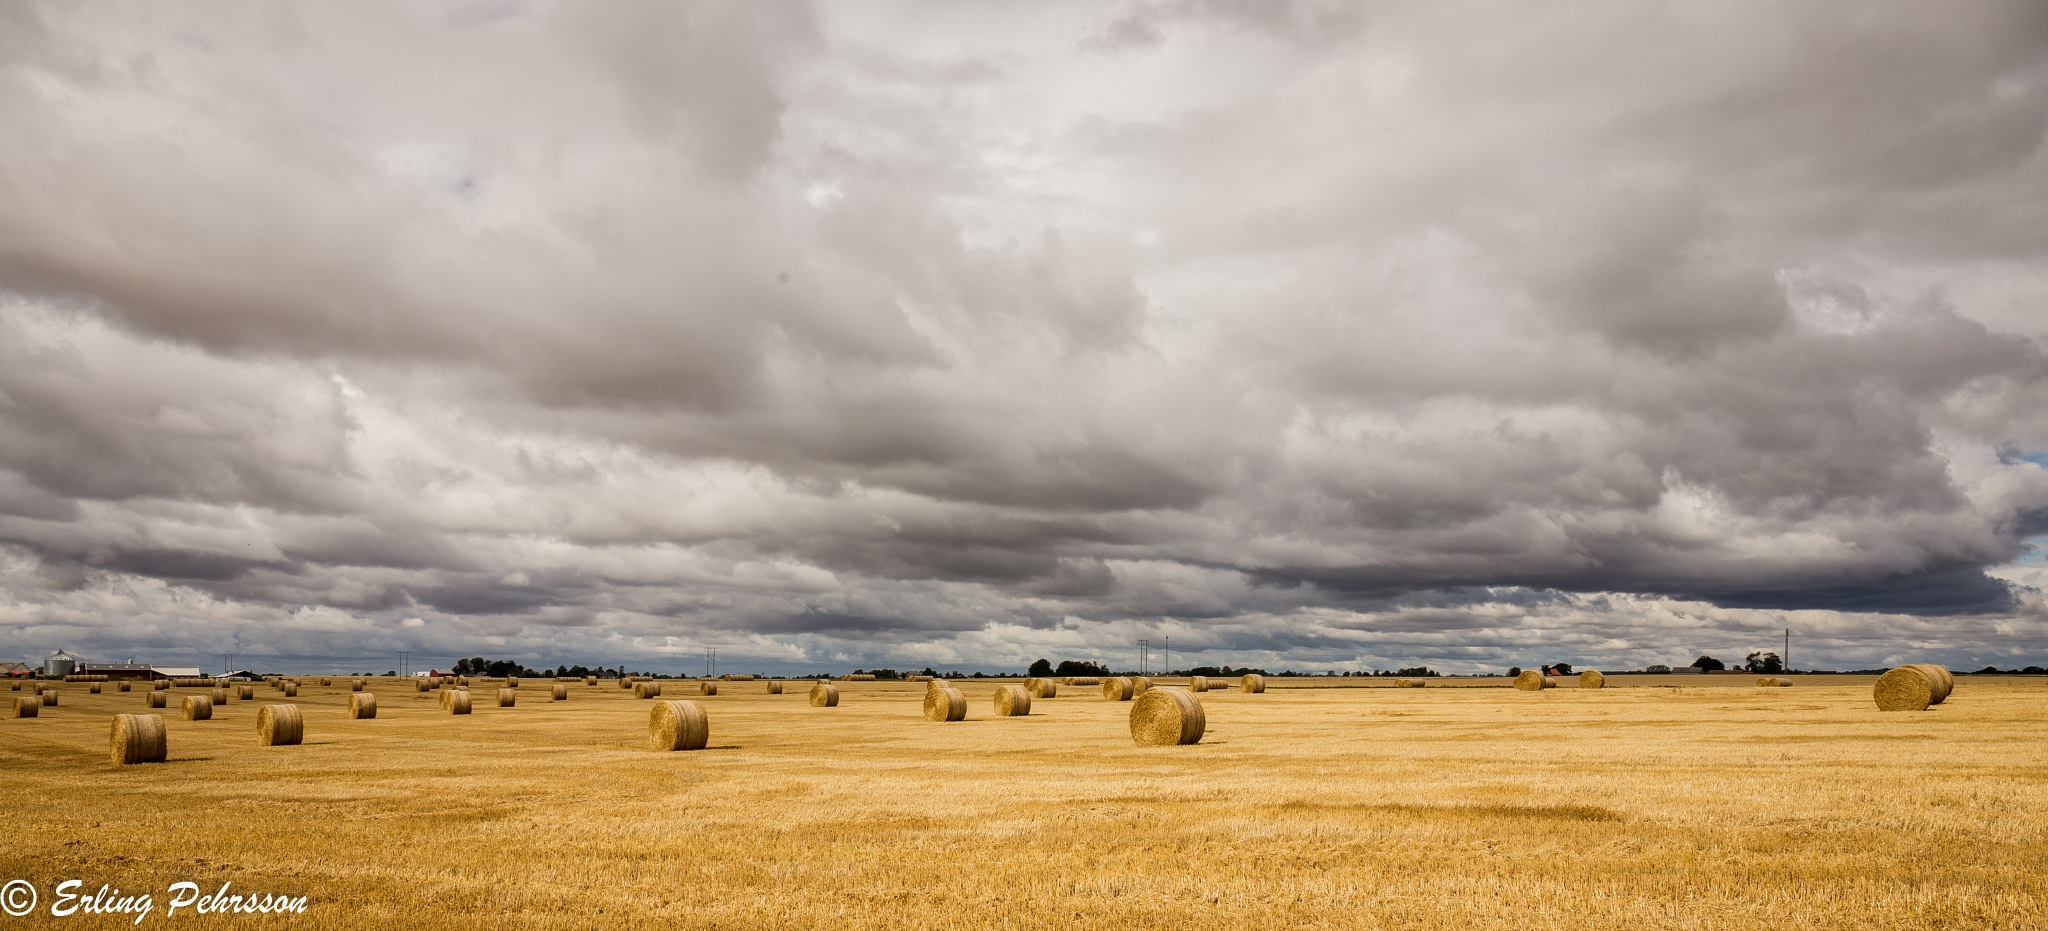 storm over wheat field  by erling.pehrsson